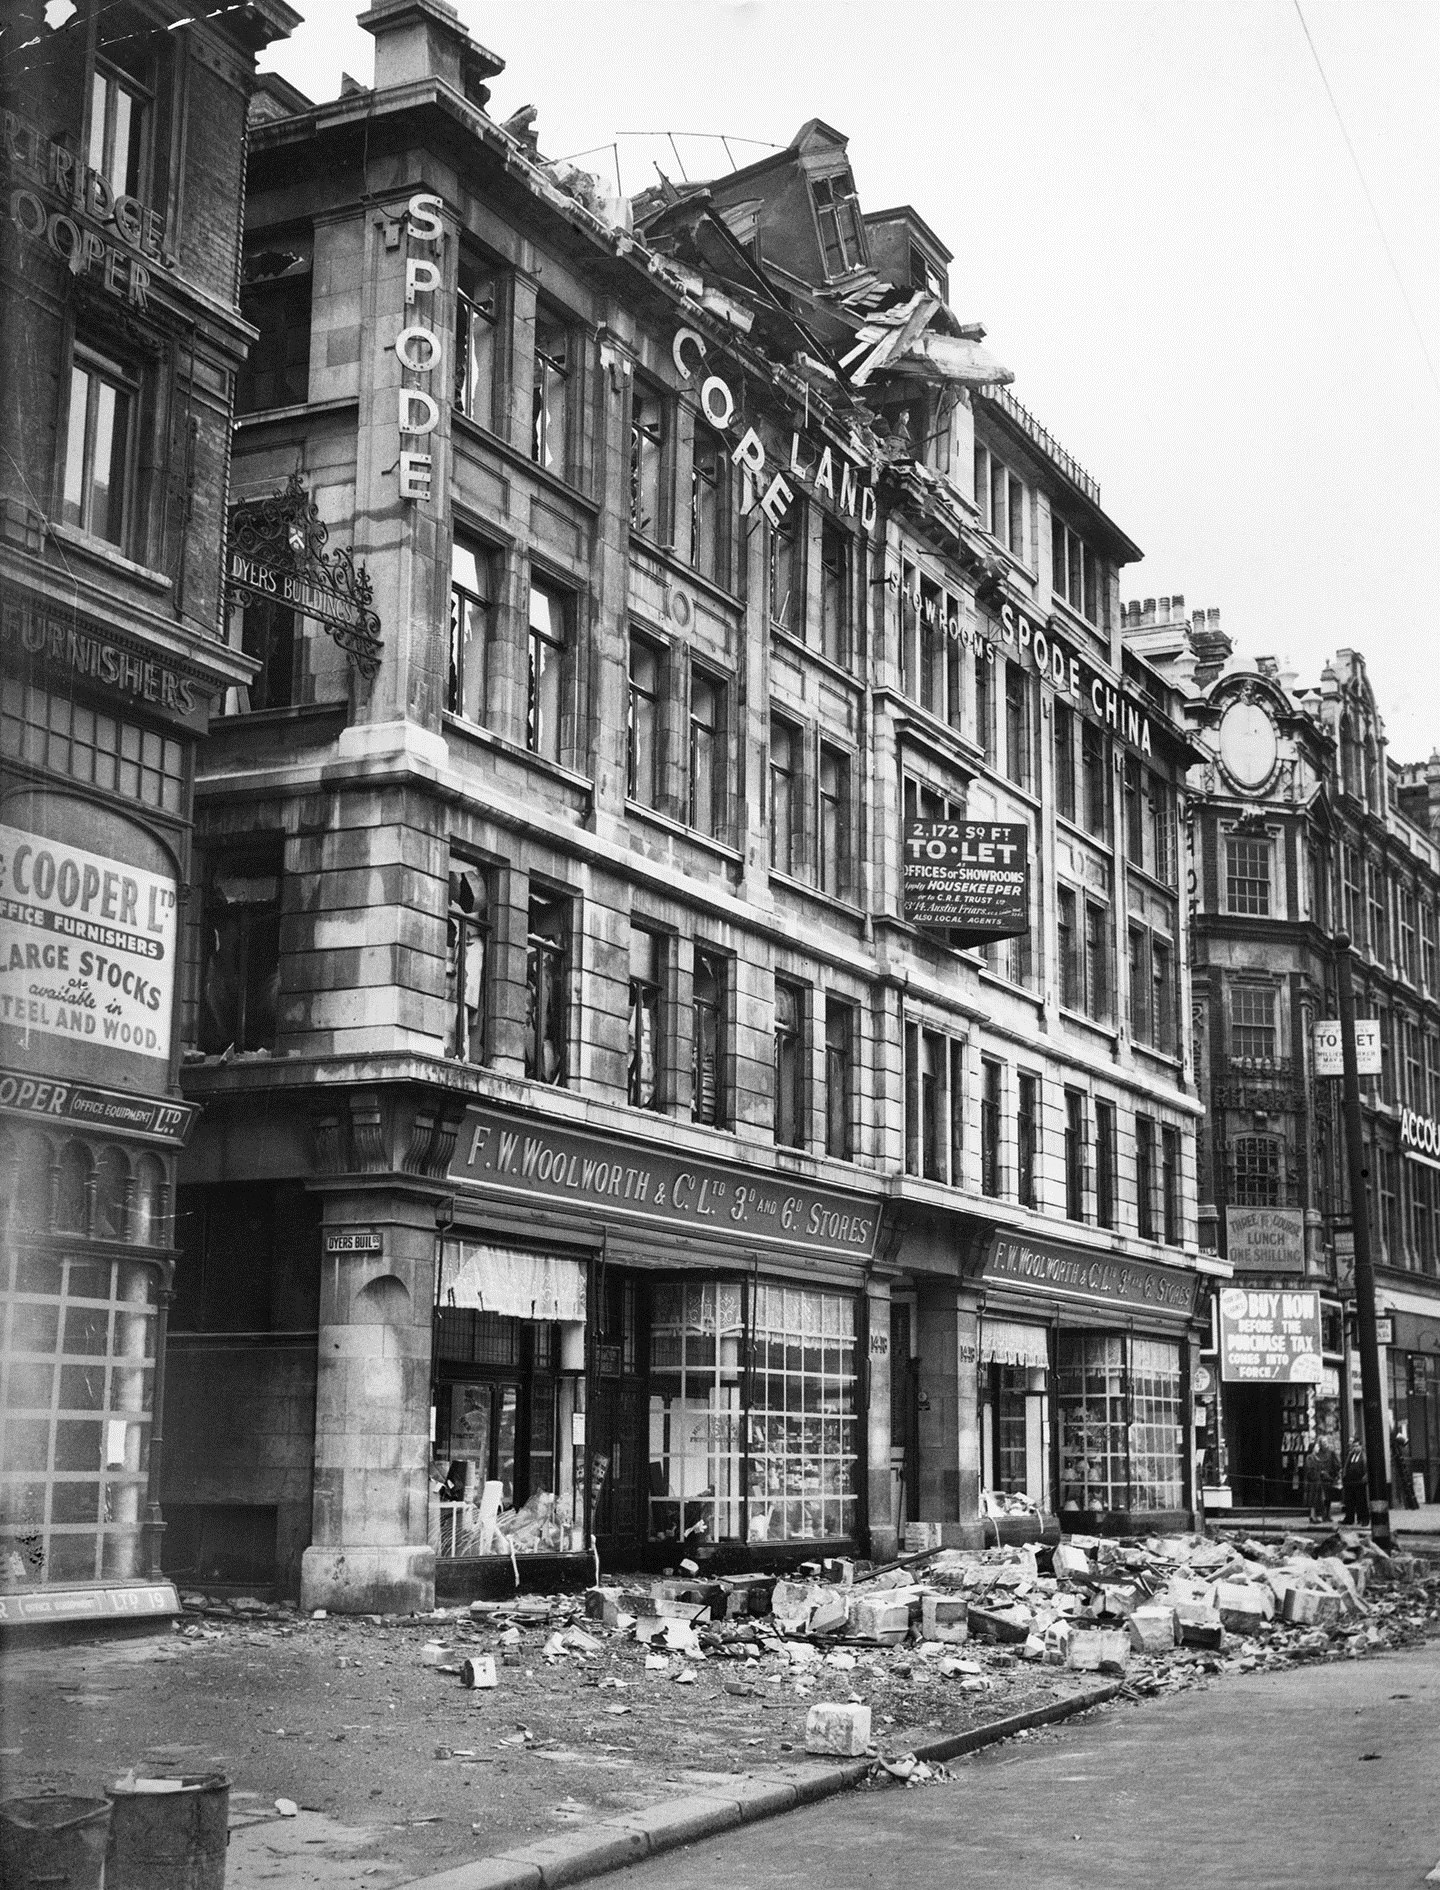 High Holborn, London, photograph taken in the immediate aftermath of bombing 8 October 1940